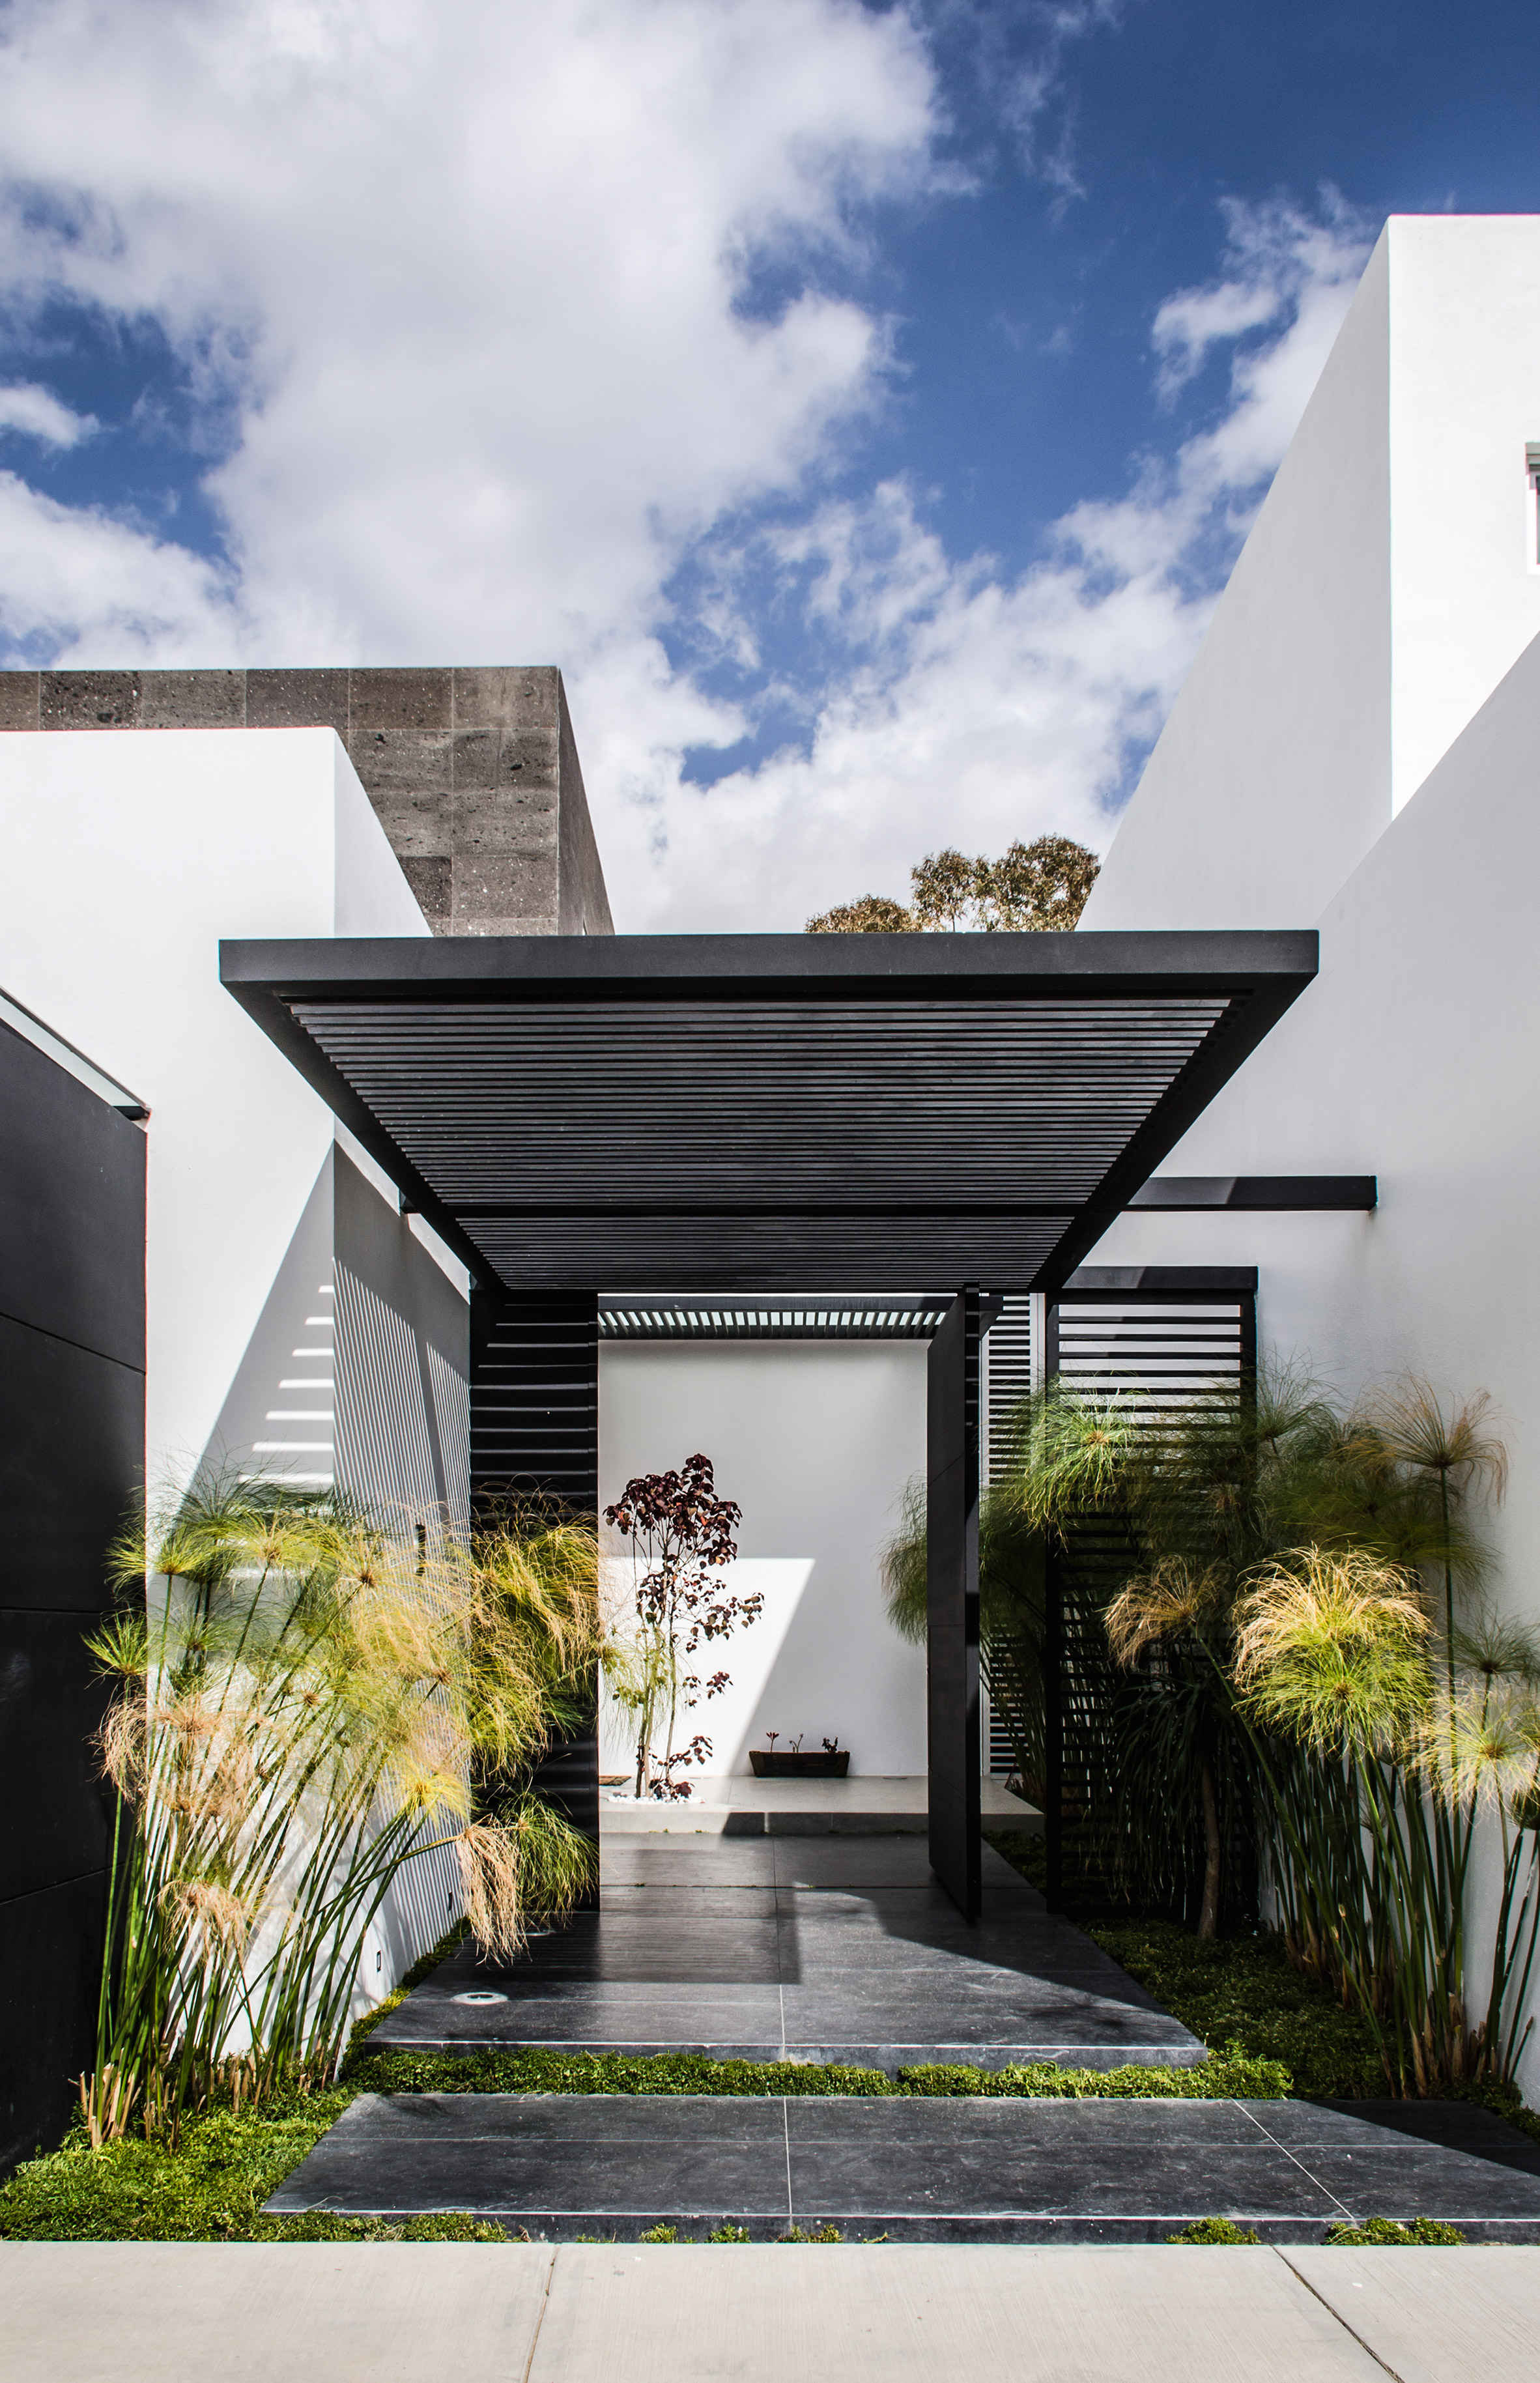 Mesquite tree serves as focal point for Mexican home by BAG Arquitectura